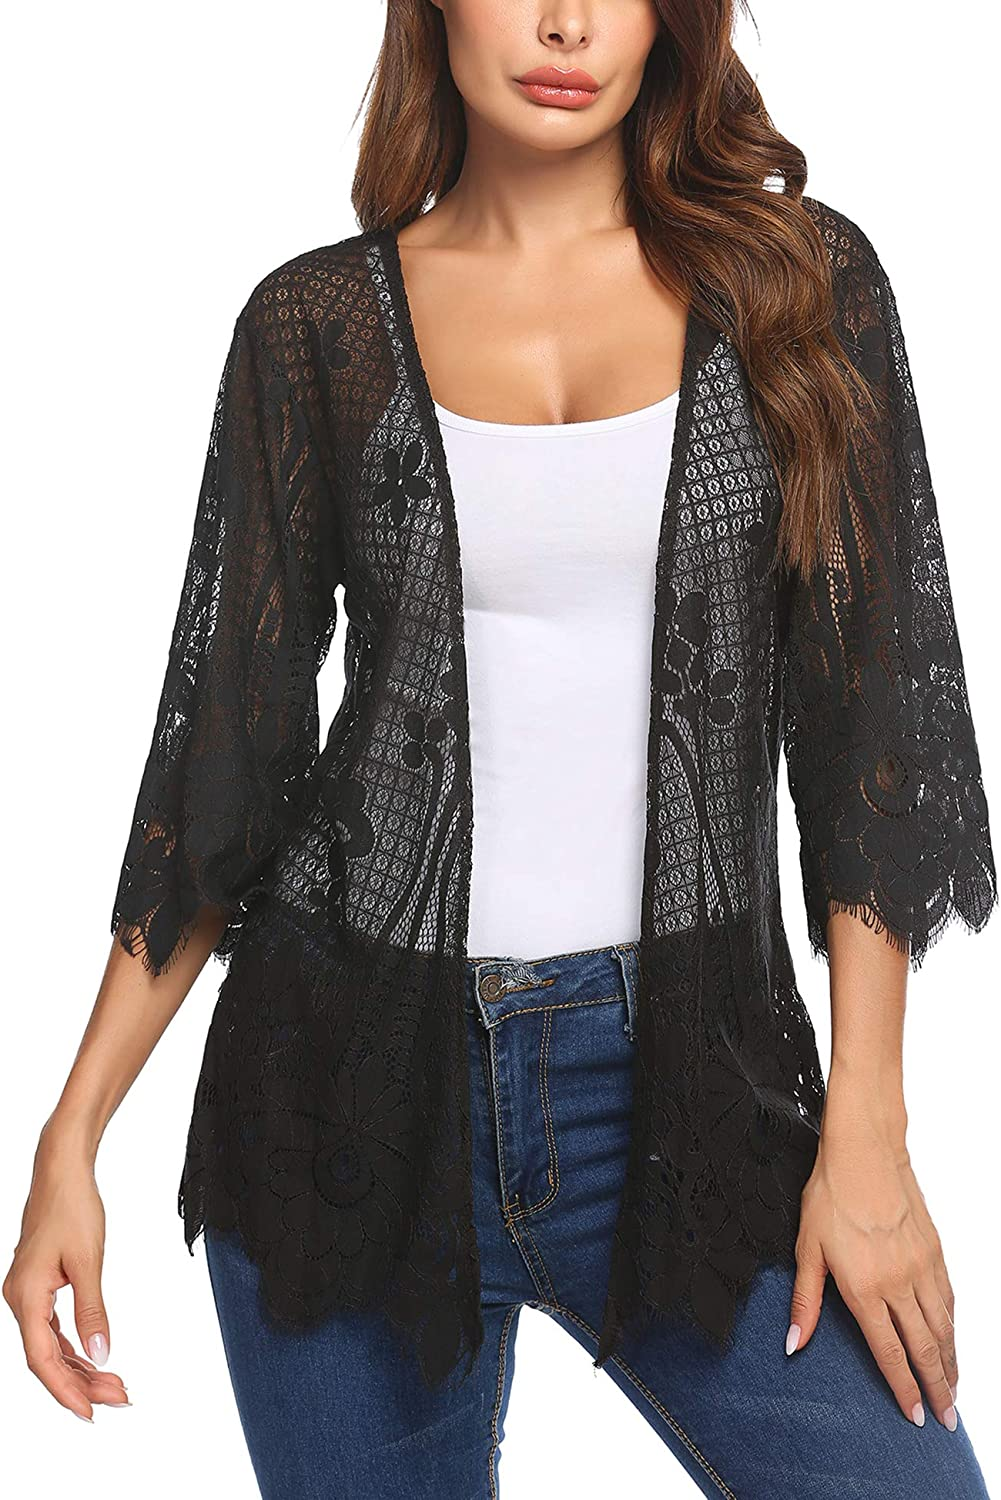 Chainscroll Women Casual Kimono 3 4 Sleeve Cover Up Crochet Lace Cardigans